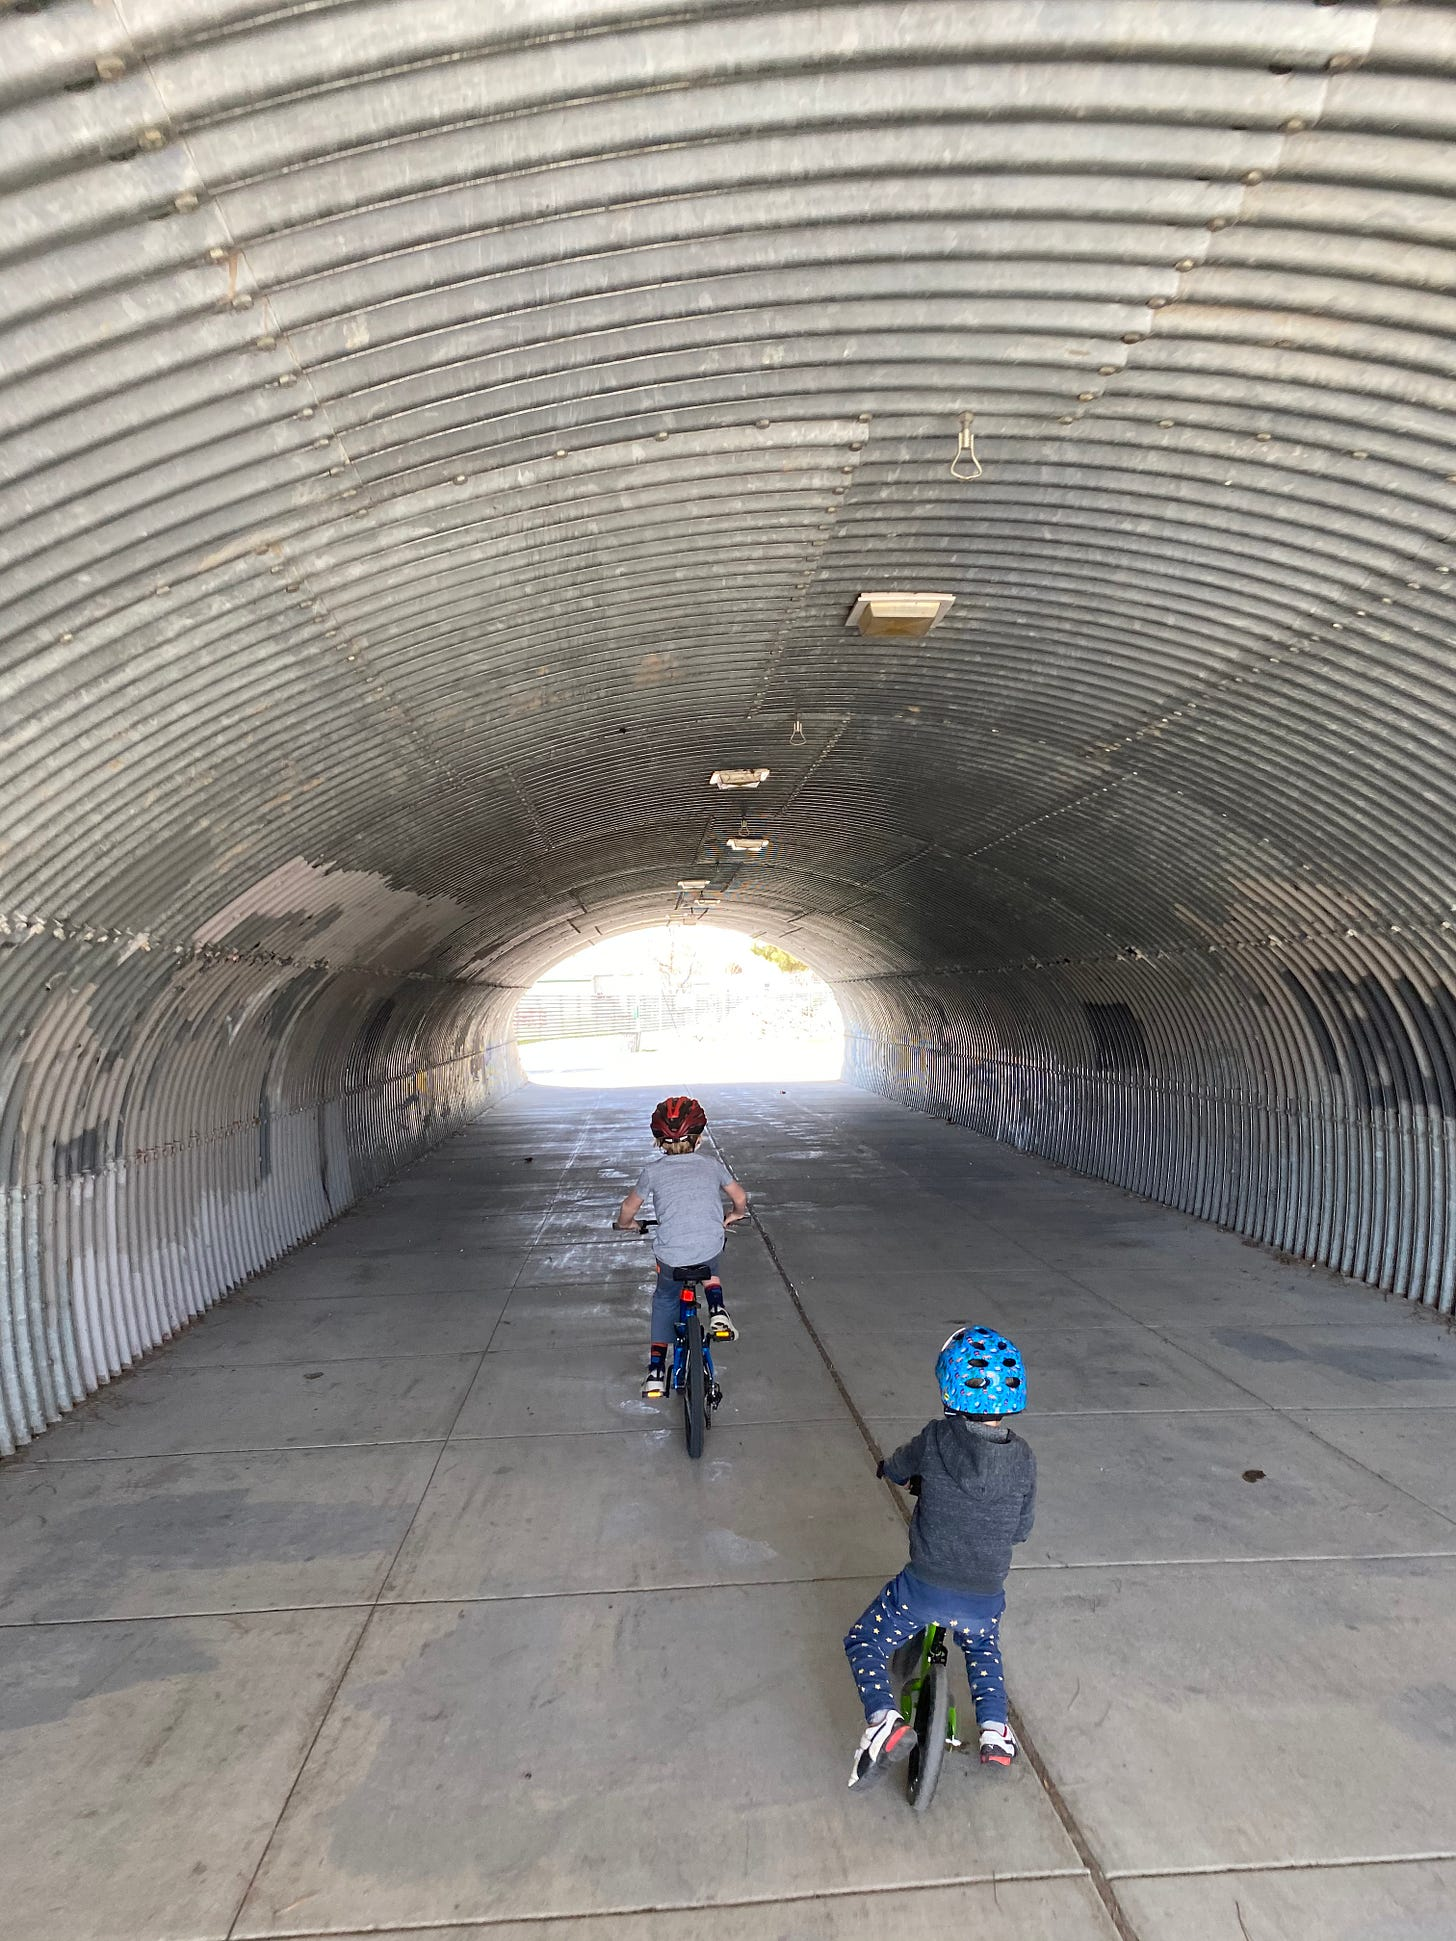 My two kids (one smaller than the other), riding their bikes through a corrugated metal tunnel, towards the sunlight